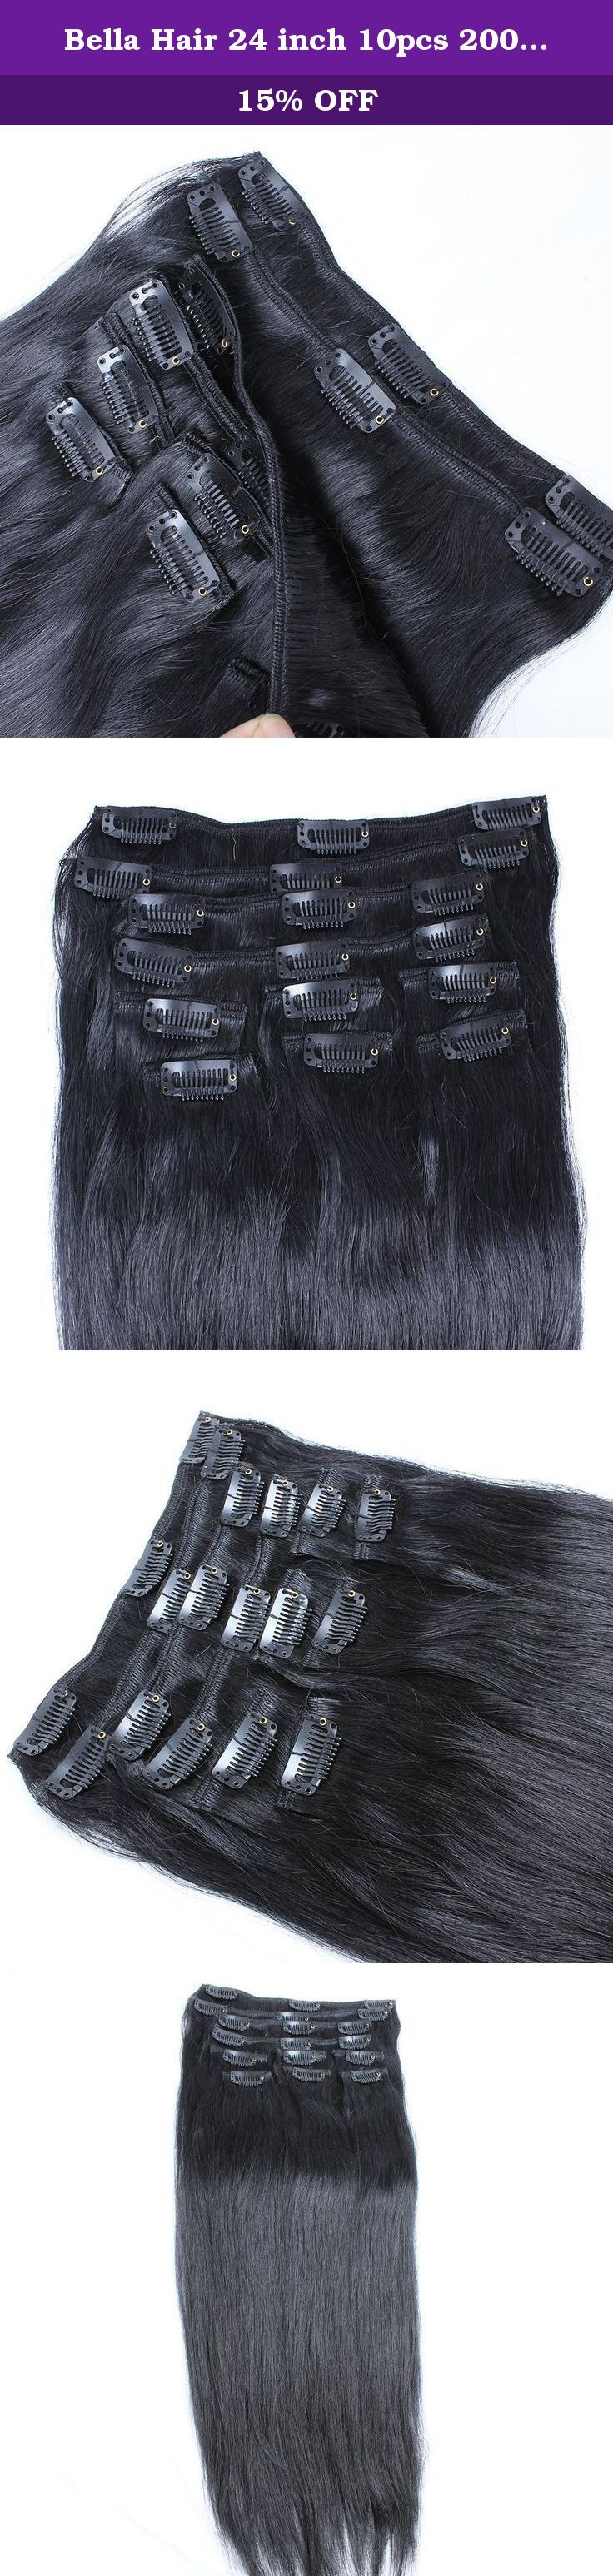 Bella Hair 24 inch 10pcs 200g Real Remy Virgin Human Hair Clip in Hair Extensions Straight 1# Jet Black Color. Clip In Hair Extensions 1) Material: 100% virgin human hair , unprocessed natural hair with no chemical process, No Acid! No Dye! 100% Real Human Hair. 2) Quality: Grade AAAAAA, No shedding, No tangle, No lice, intact cuticle, long lifetime 3) Length: 100% ture to the length 4) Color: 1# Jet Black Color. 5) Hair Type : Clip In Hair Extensions 6) Weight: 200gram/Set 7) Clips...